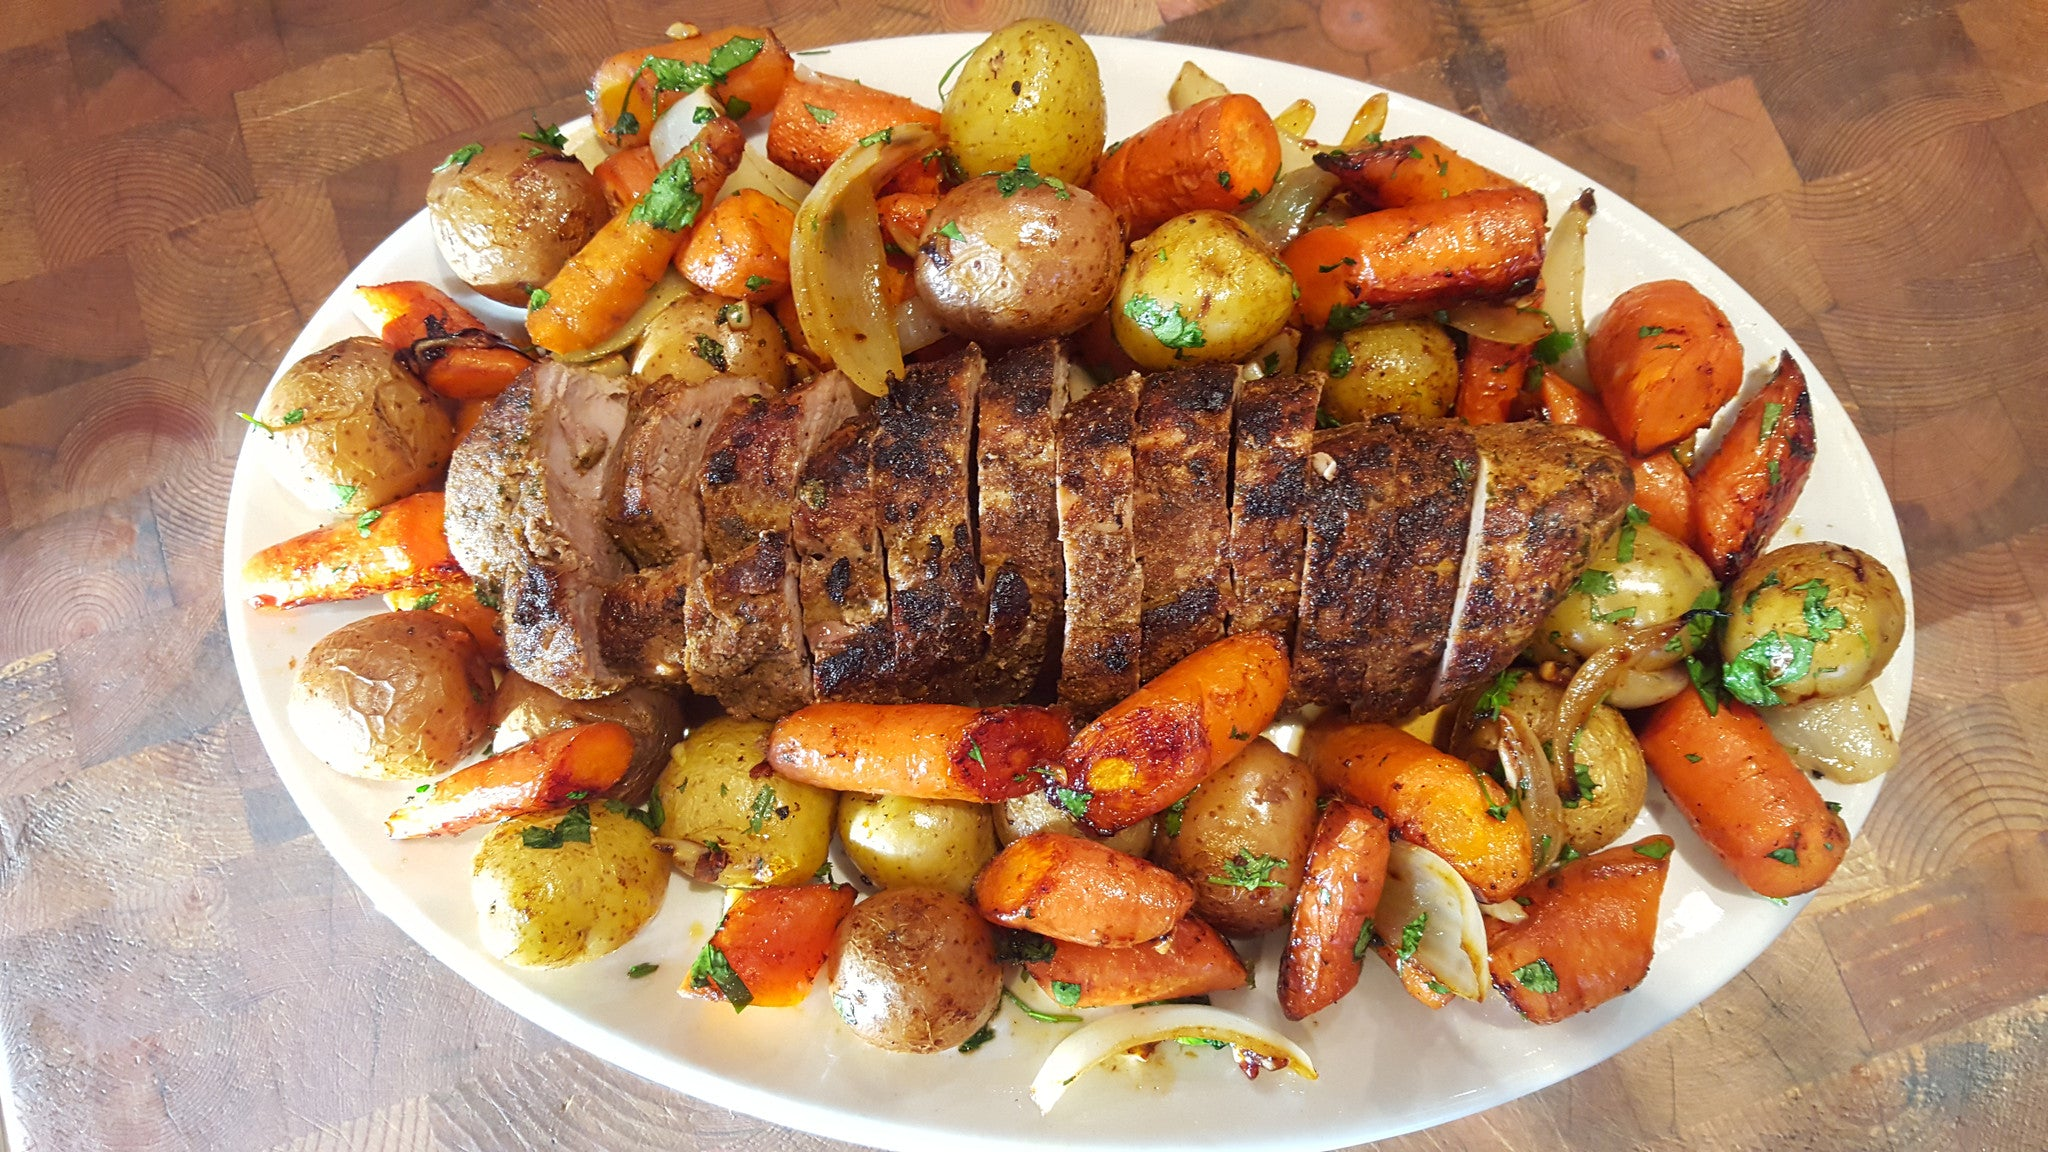 One Pot Pork Tenderloin with Potatoes & Carrots Recipe